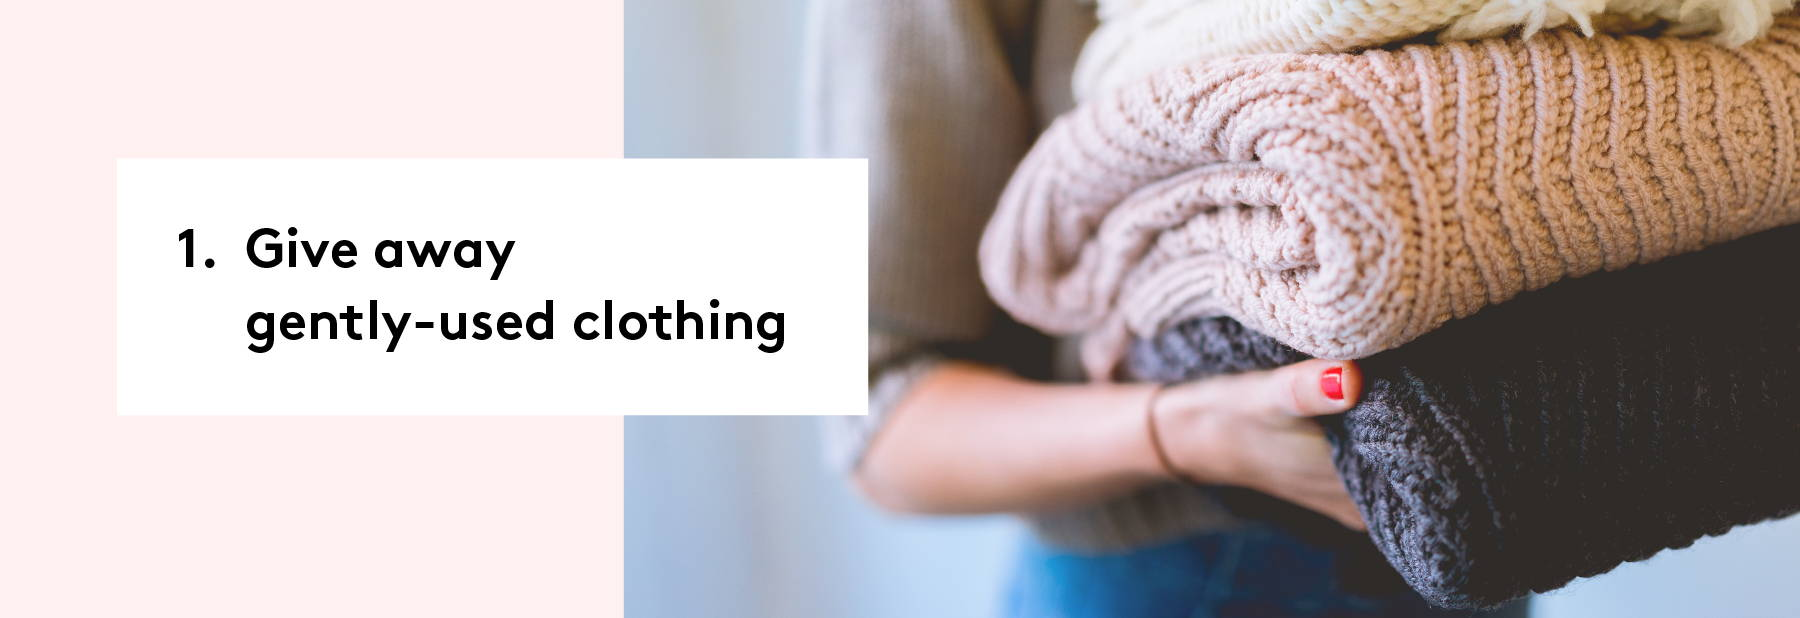 1. Give away gently-used clothing